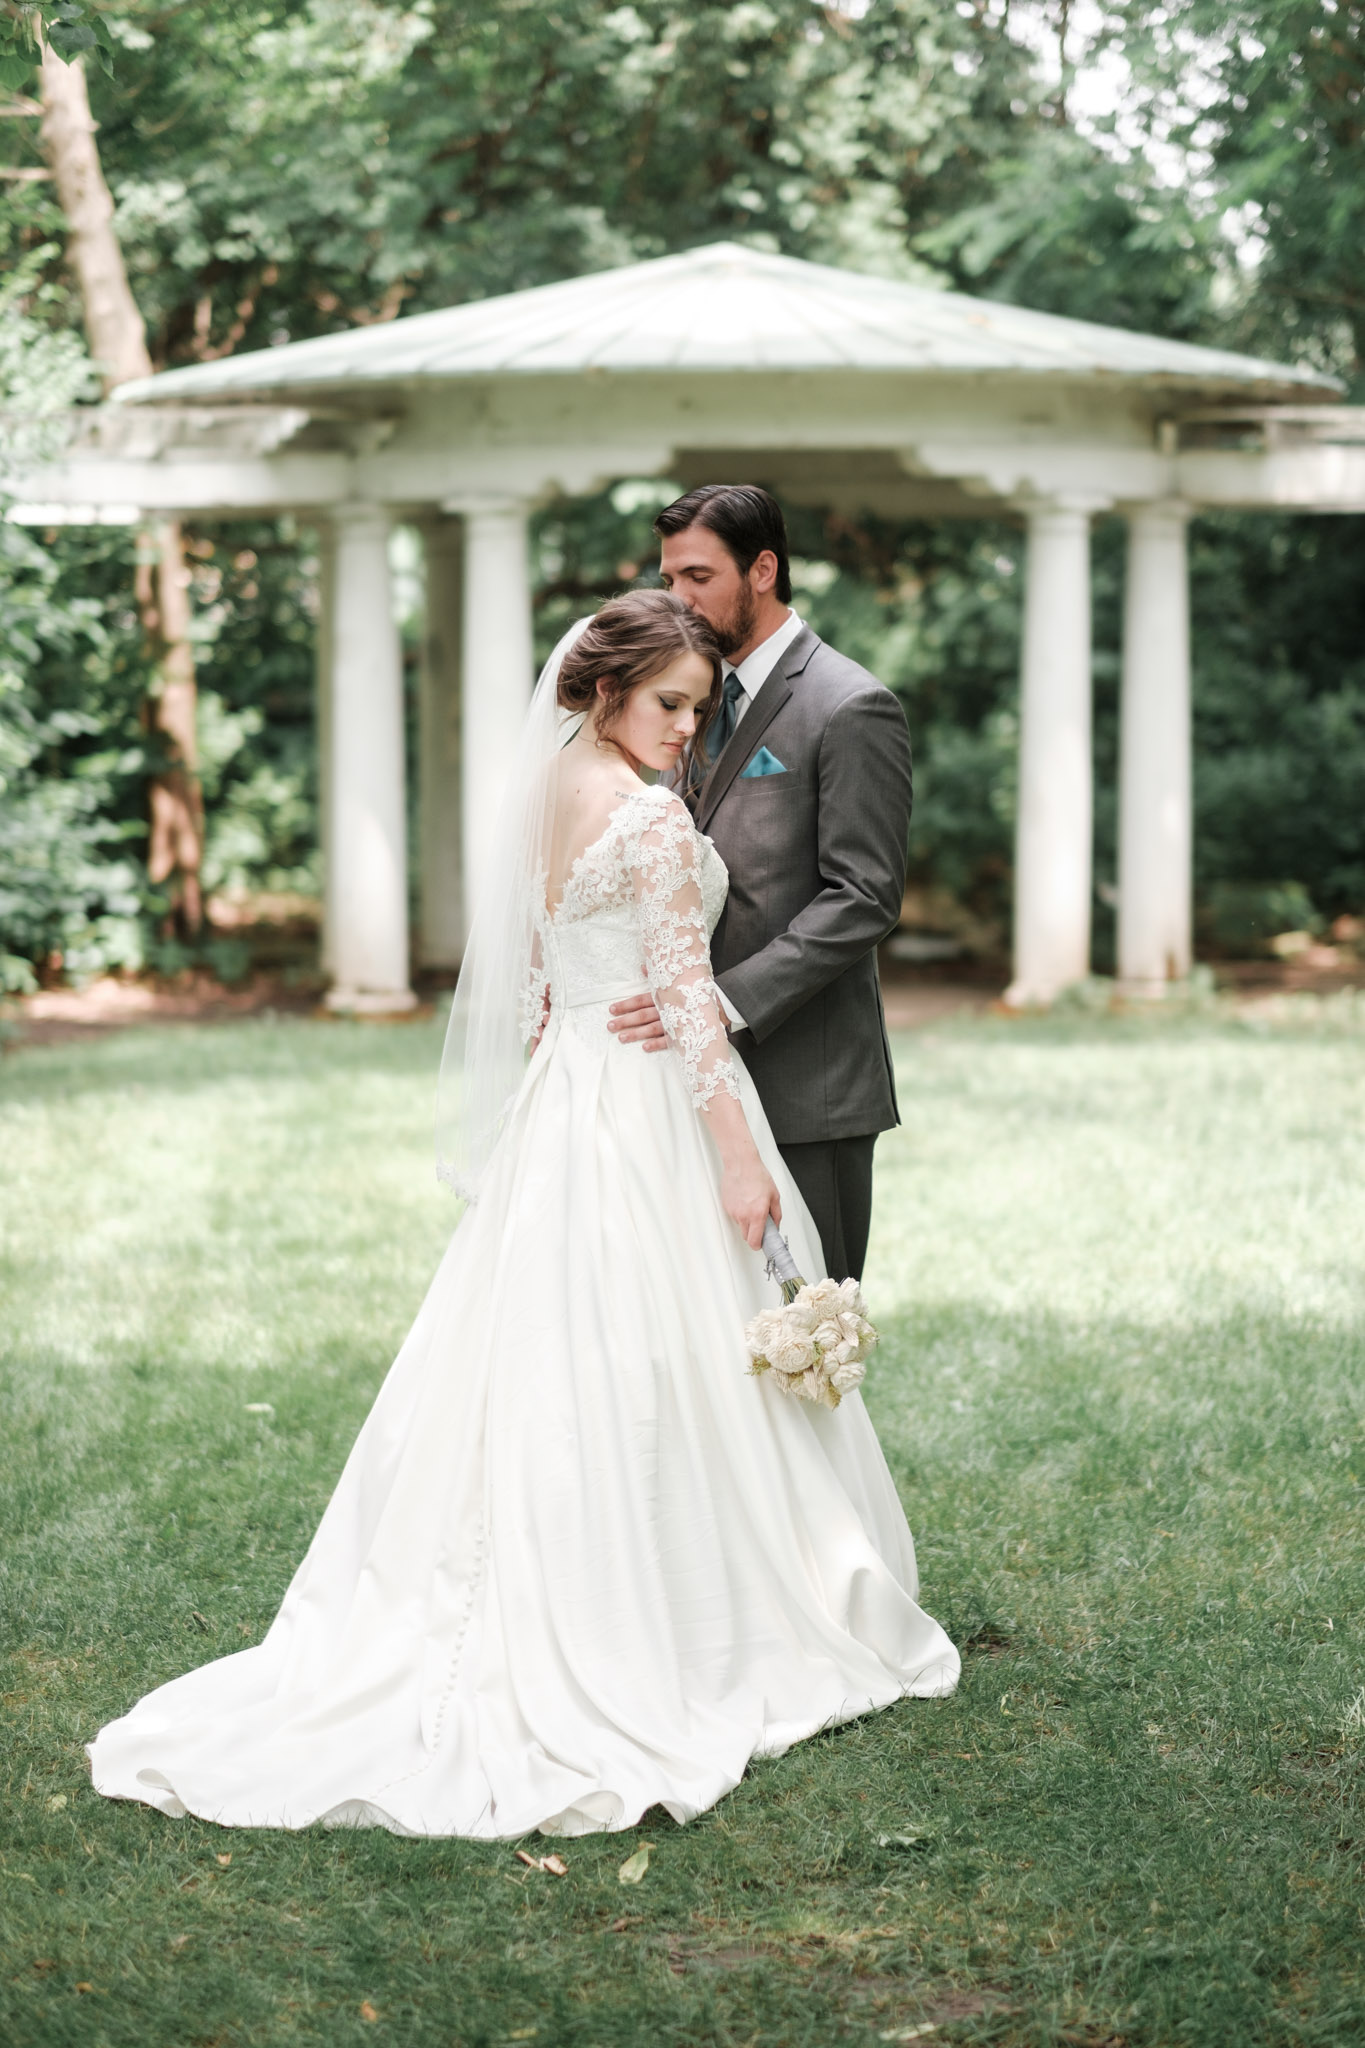 Bride and groom embrace in front of pergola at Sinnissippi Gardens in Rockford, Illinois during their first look.